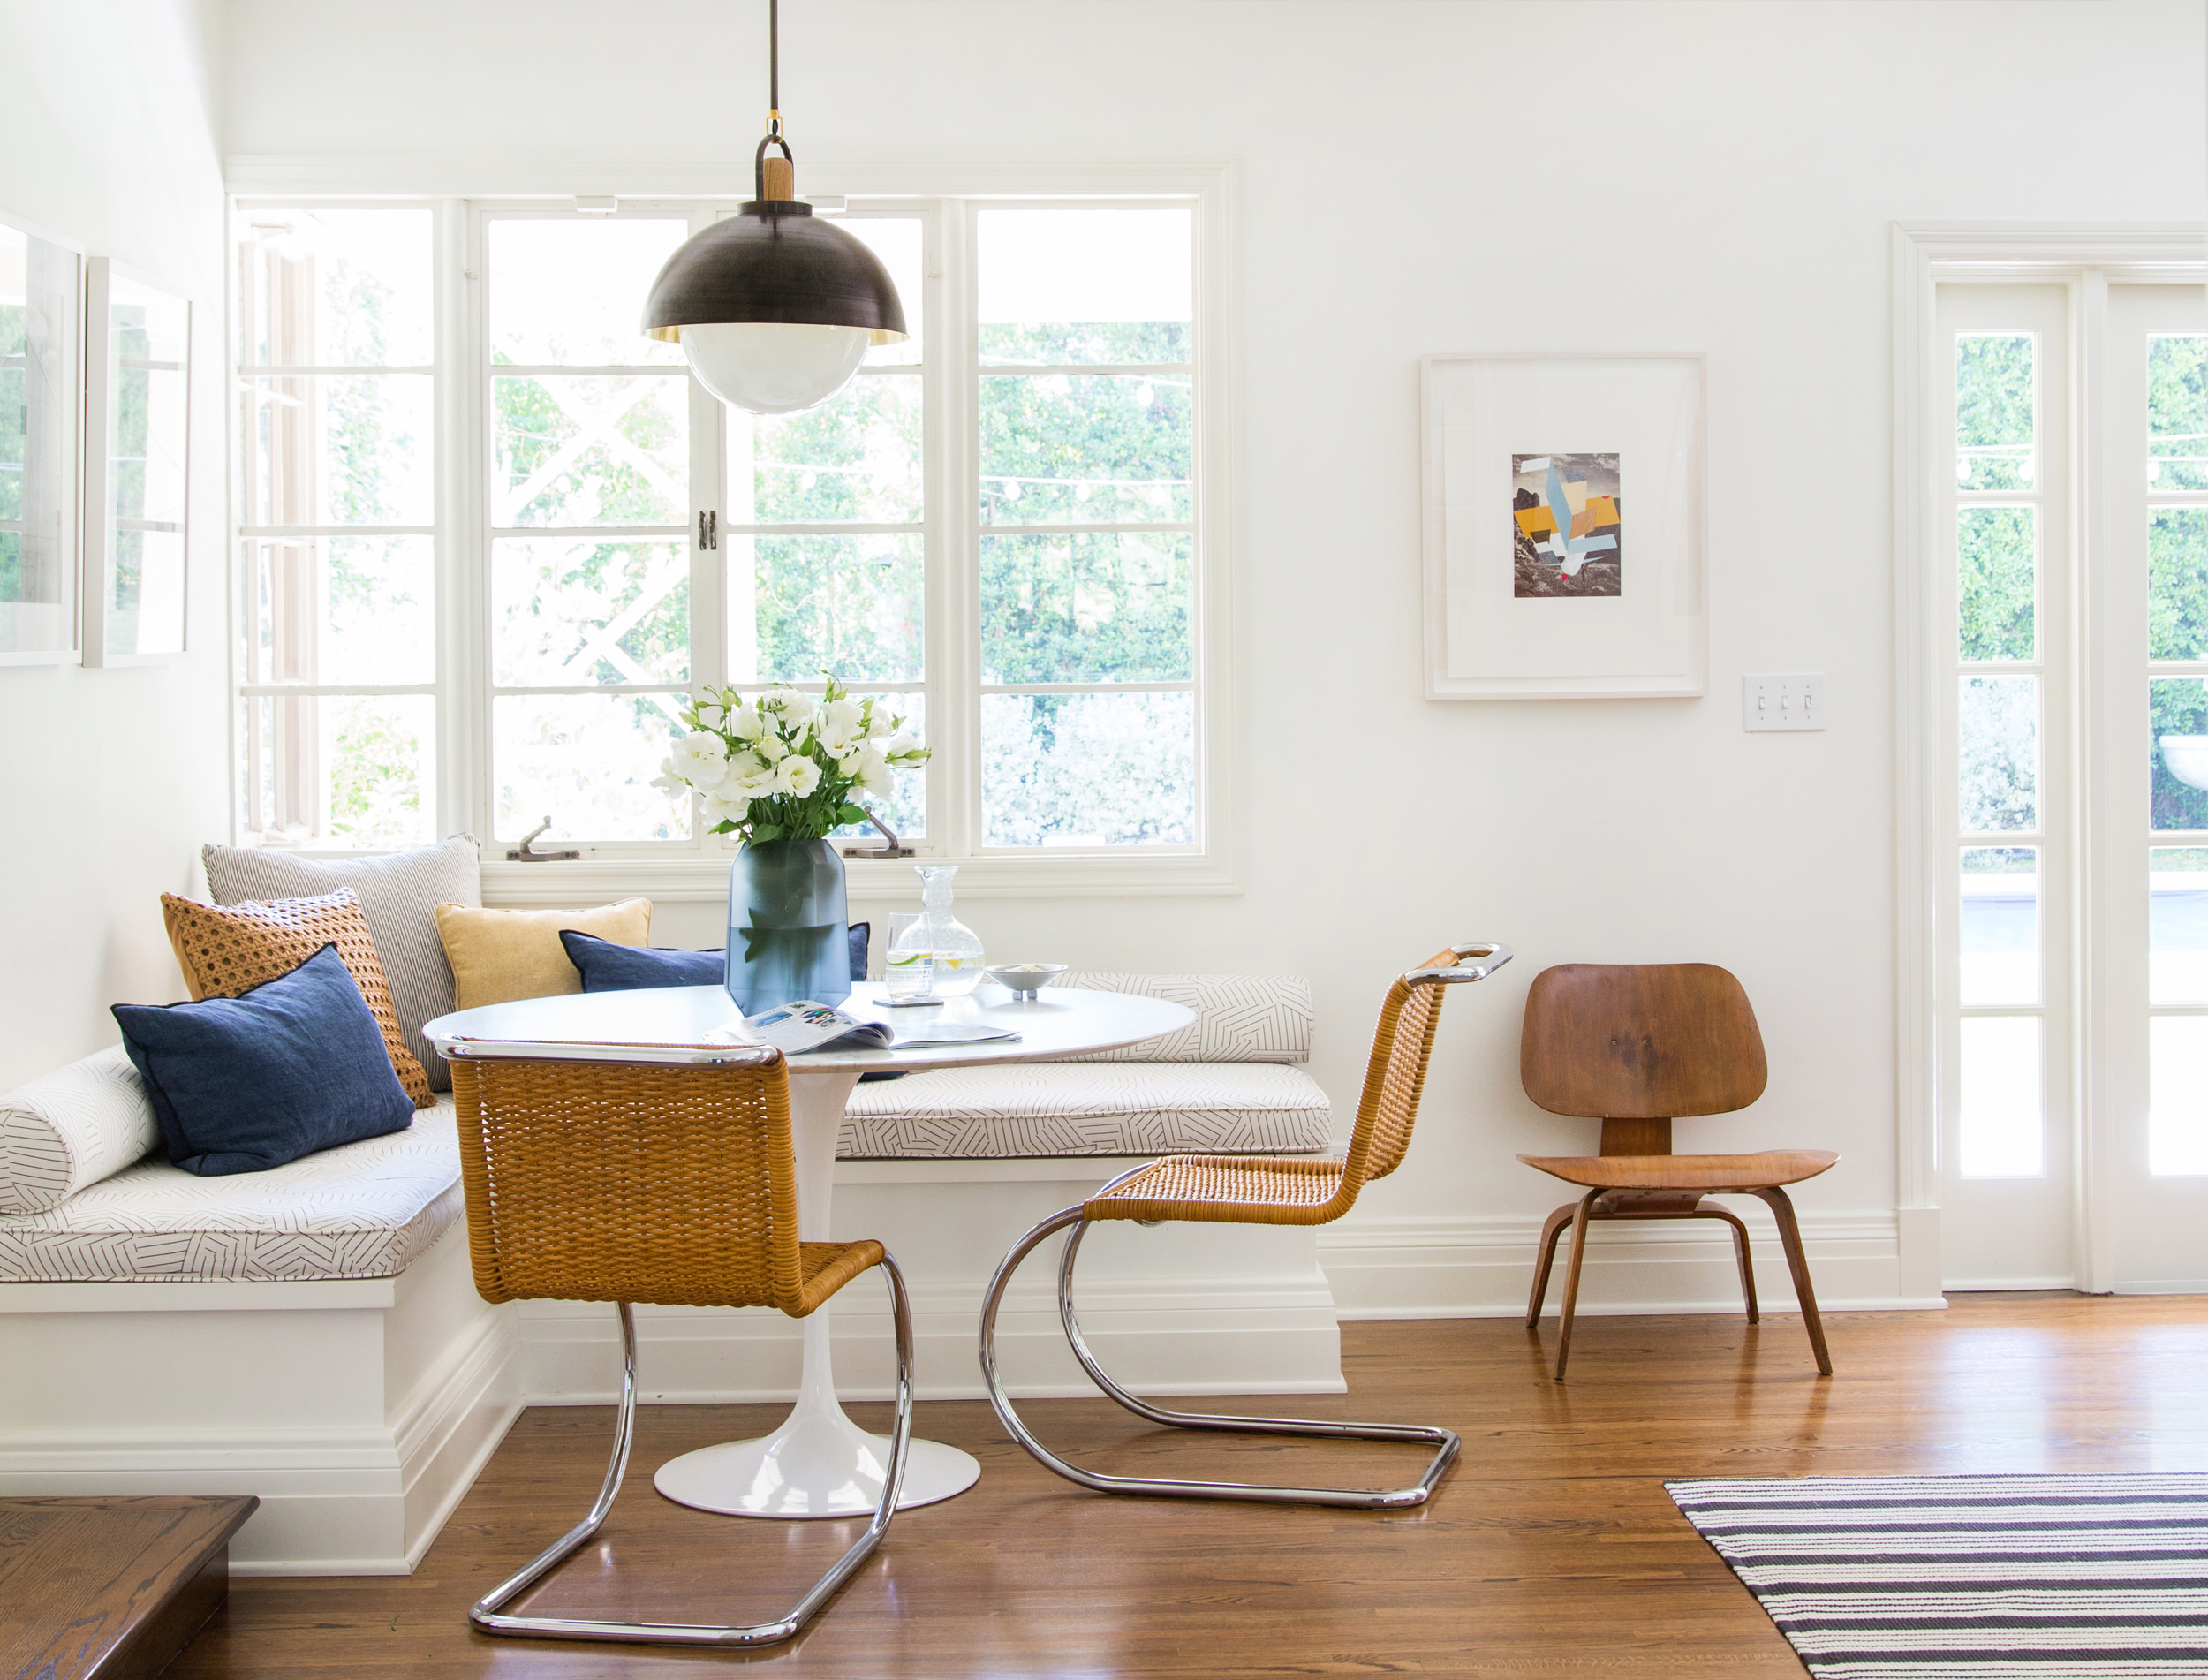 our favorite accent chairs under rules considering emily henderson with table home goods website threshold mirrored tall breakfast solid wood farmhouse dining bungee chair target